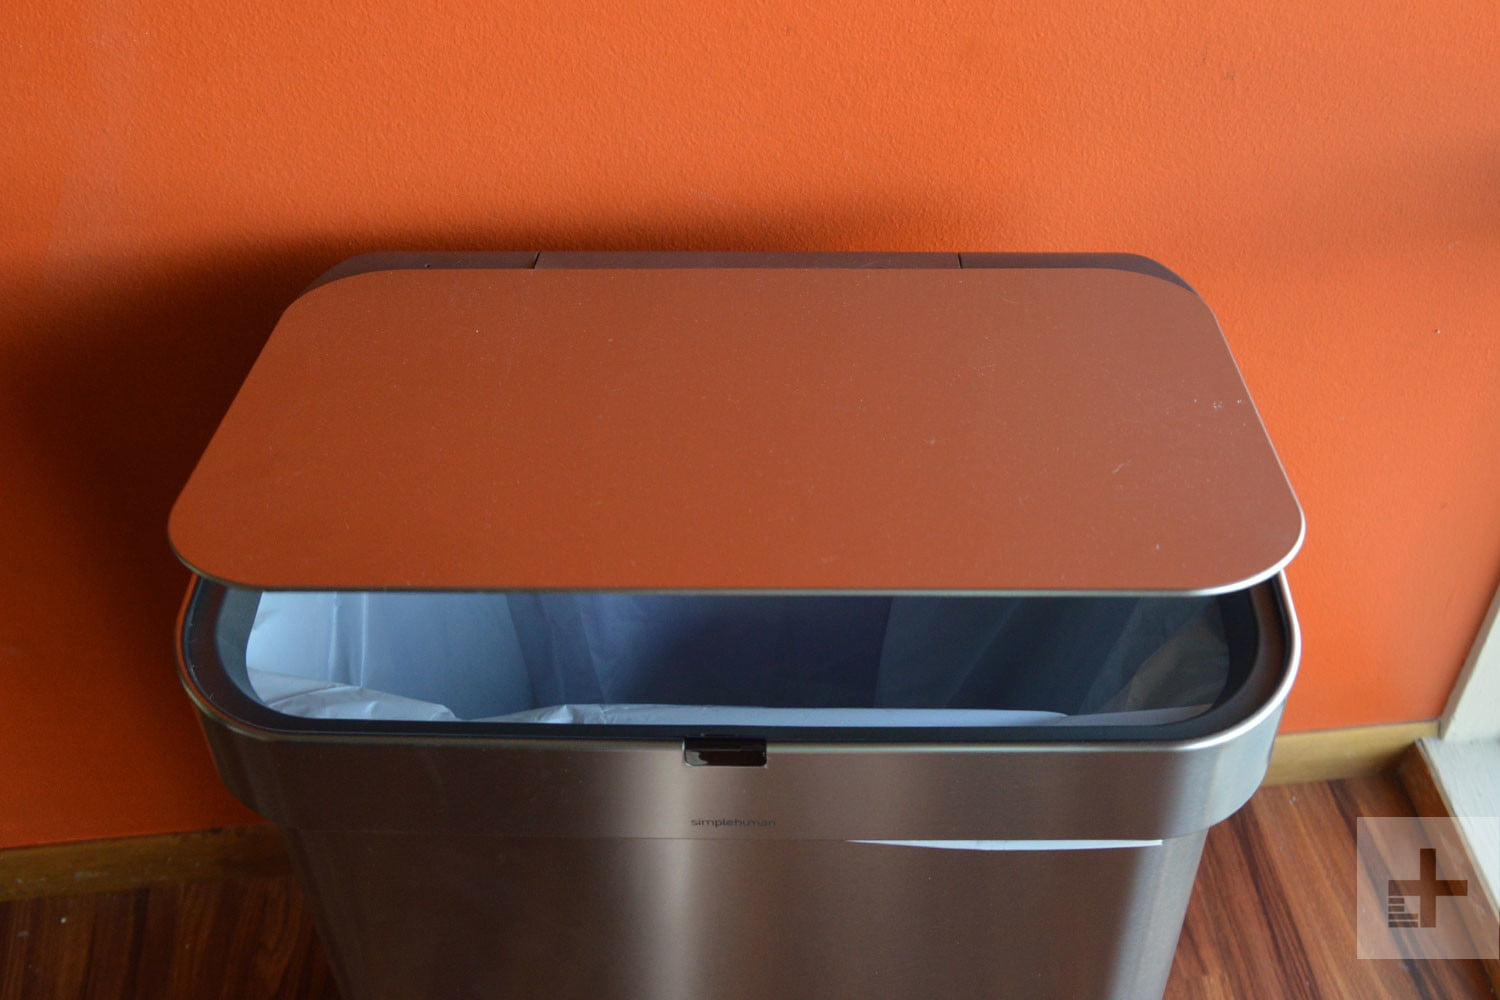 Rose Gold Trash Can Simplehuman Voice Activated Sensor Trash Can Review